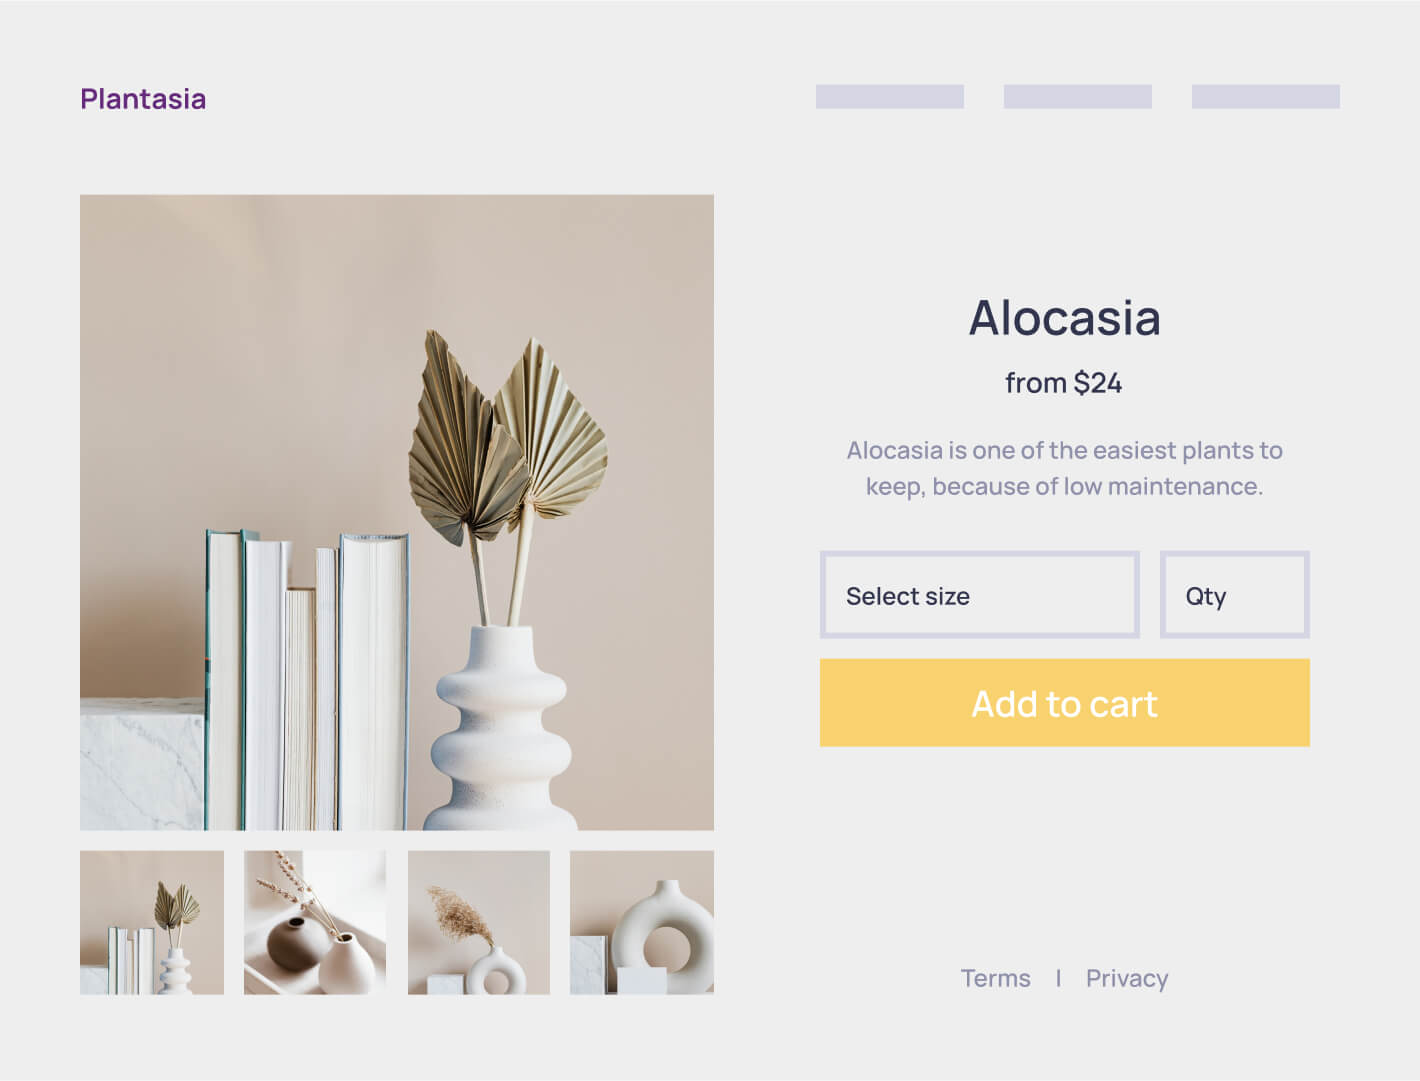 Browser mockup of an e-commerce website